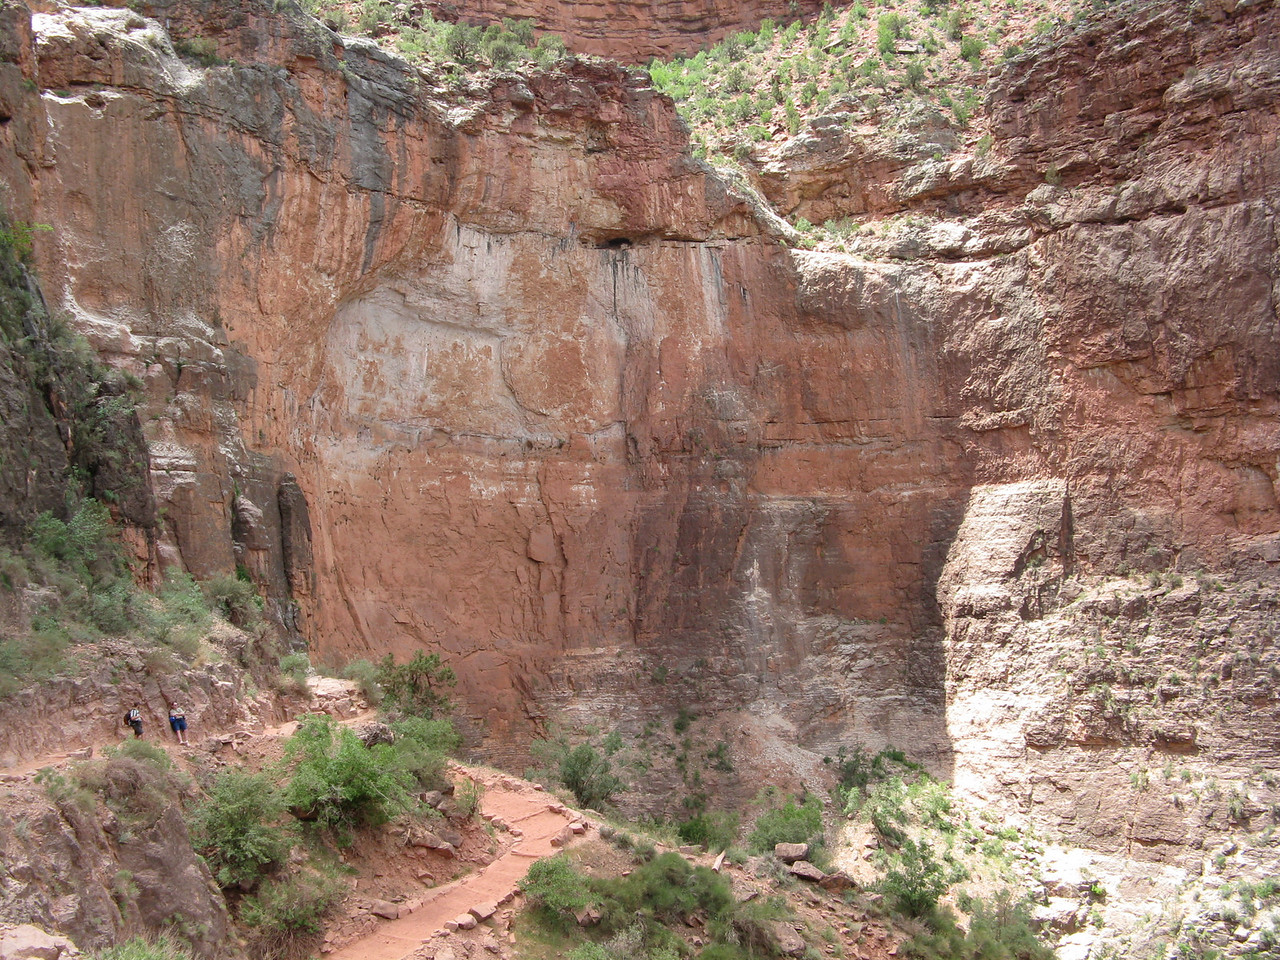 We climbed Jacobs Ladder.  The Bright Angel Trail is one of the few places where there is a natural gap in the Redwall Limestone cliffs that surround the Grand Canyon on both the north and south  rims.  There is a fault, called the Bright Angel Fault, which creates the gap.  The trail zigzags on switchbacks up through the gap.